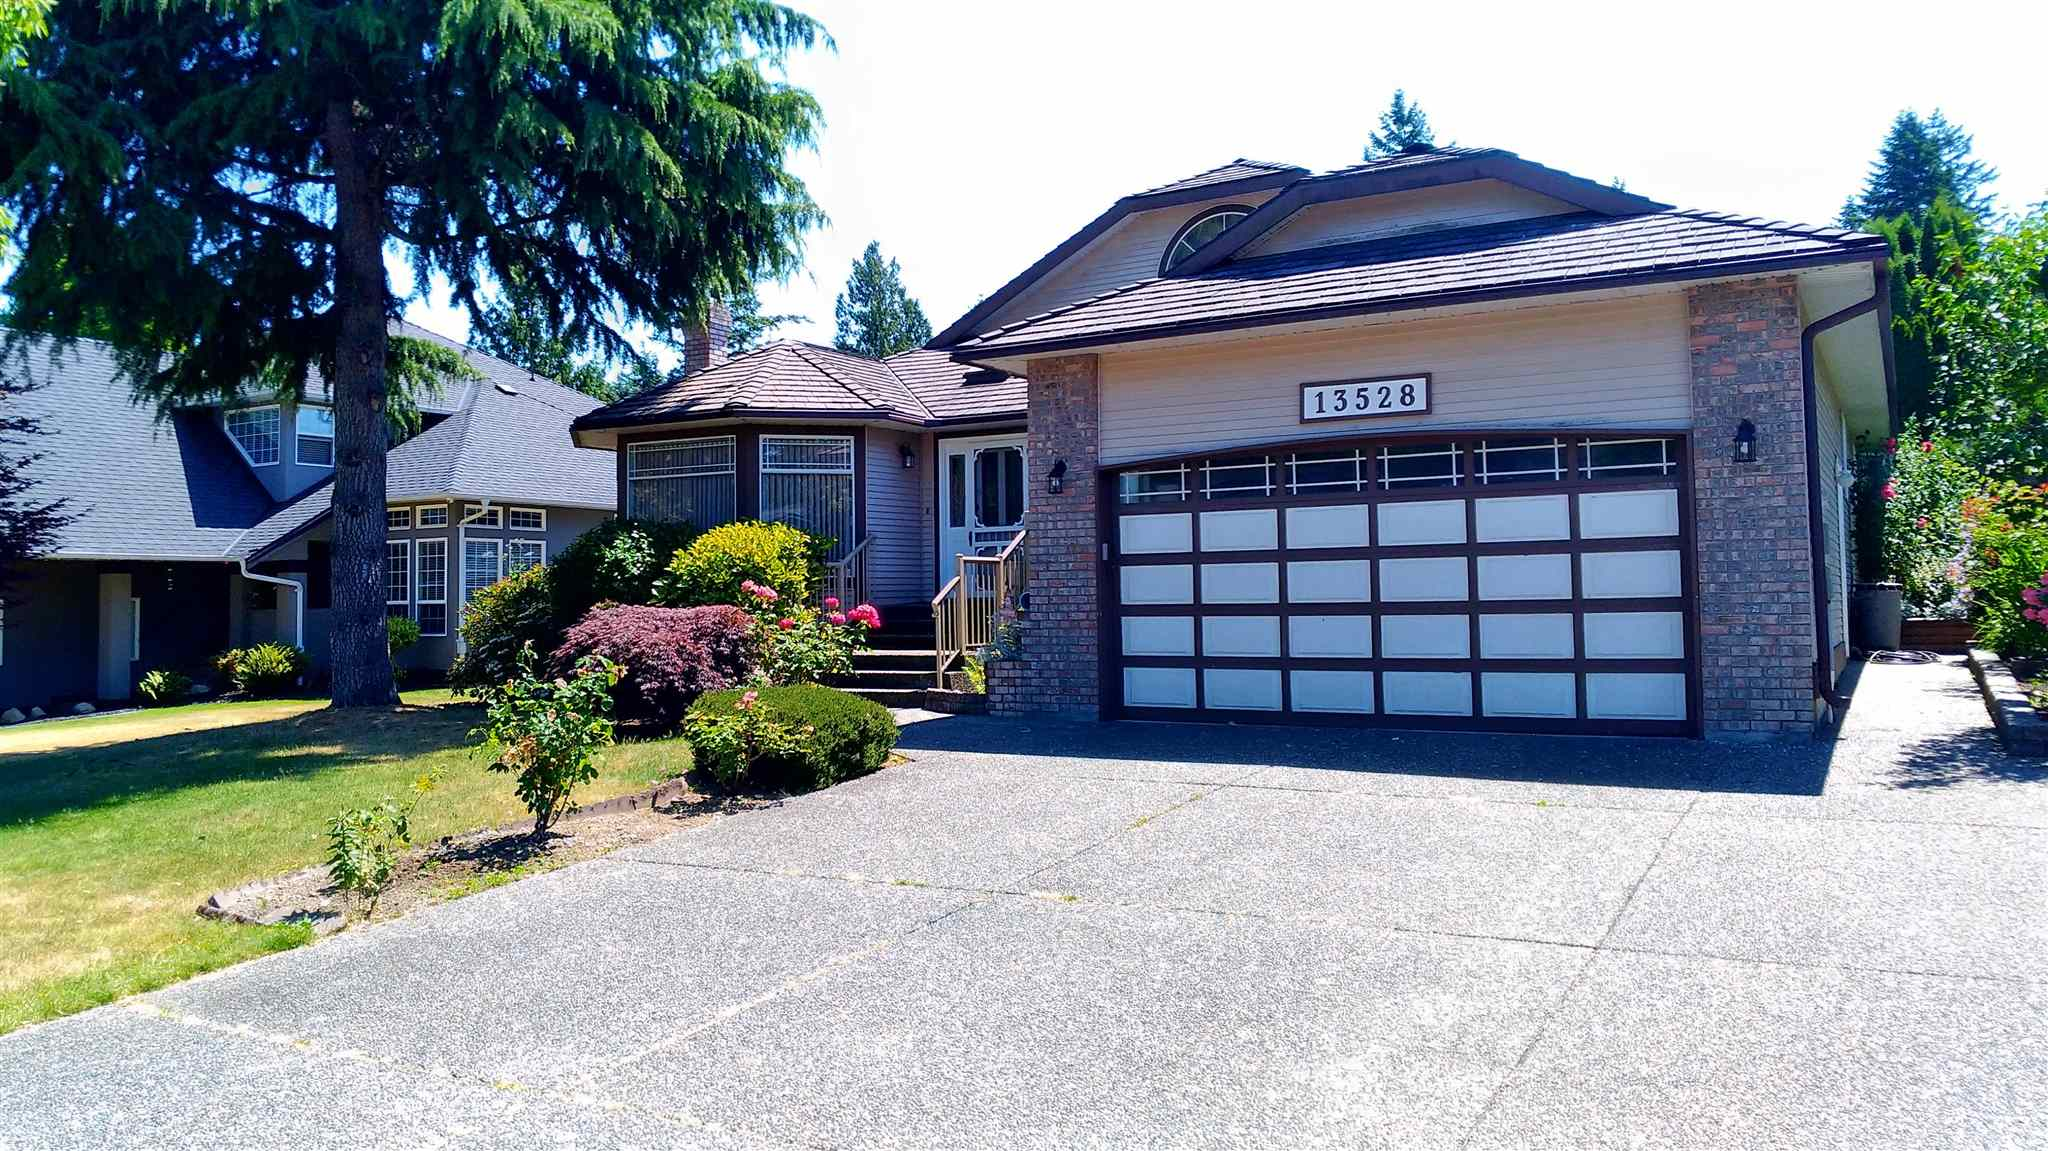 13528 60A AVENUE - Panorama Ridge House/Single Family for sale, 3 Bedrooms (R2602954) - #1